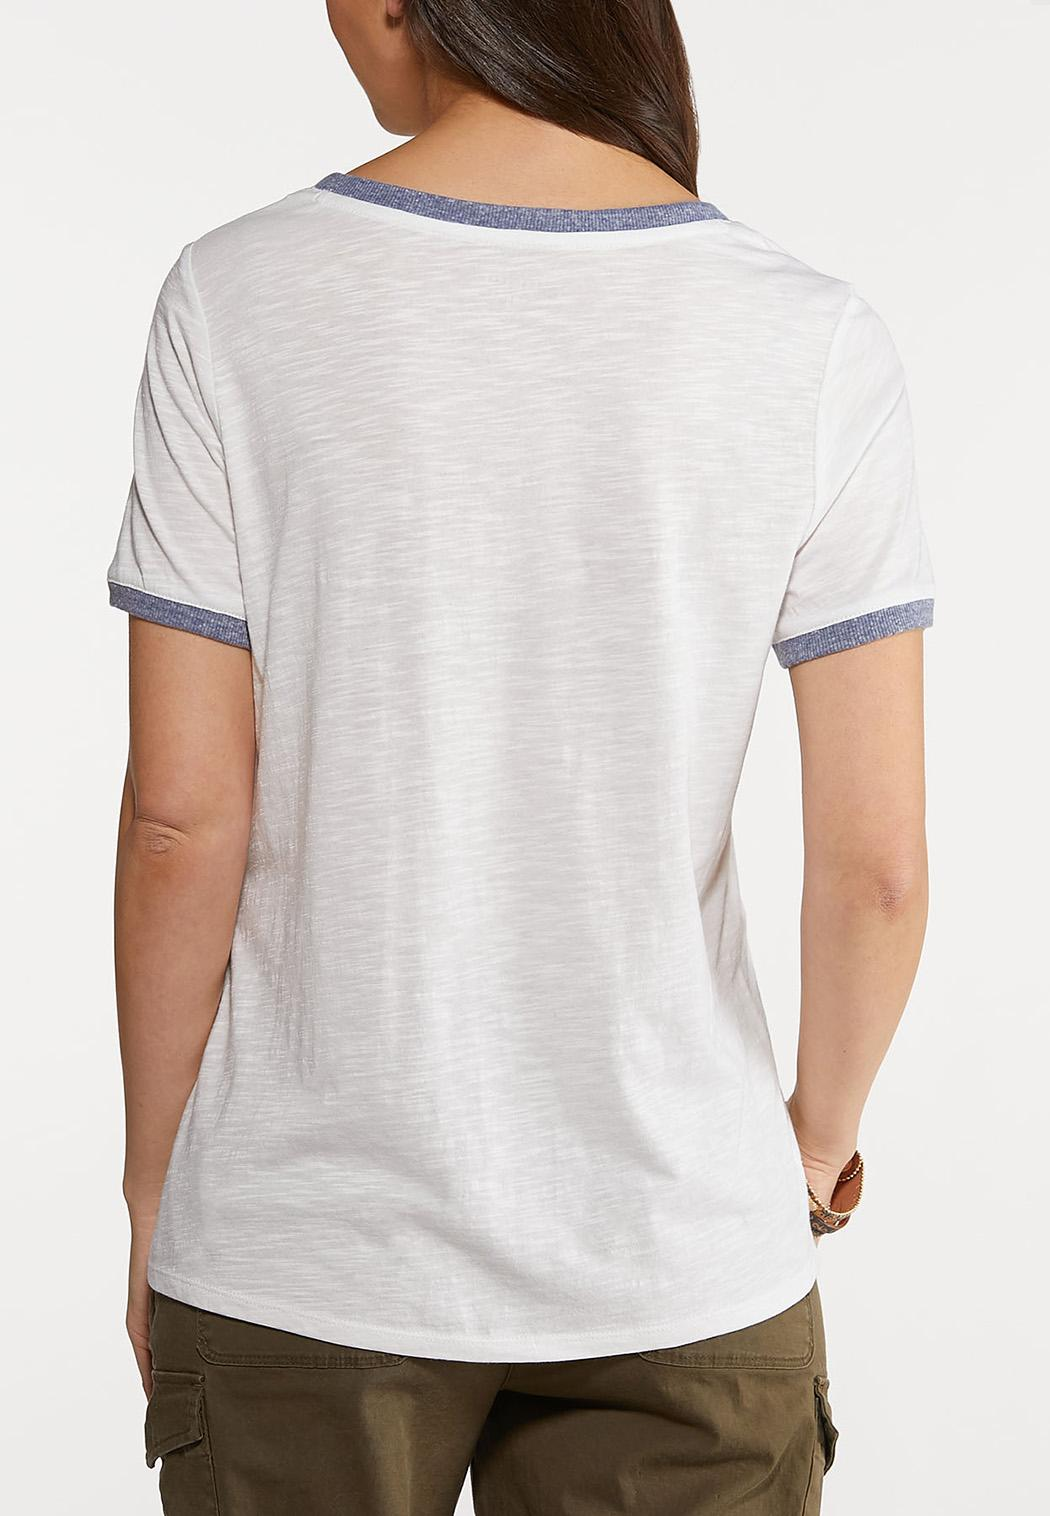 Country Road Tee (Item #44255827)